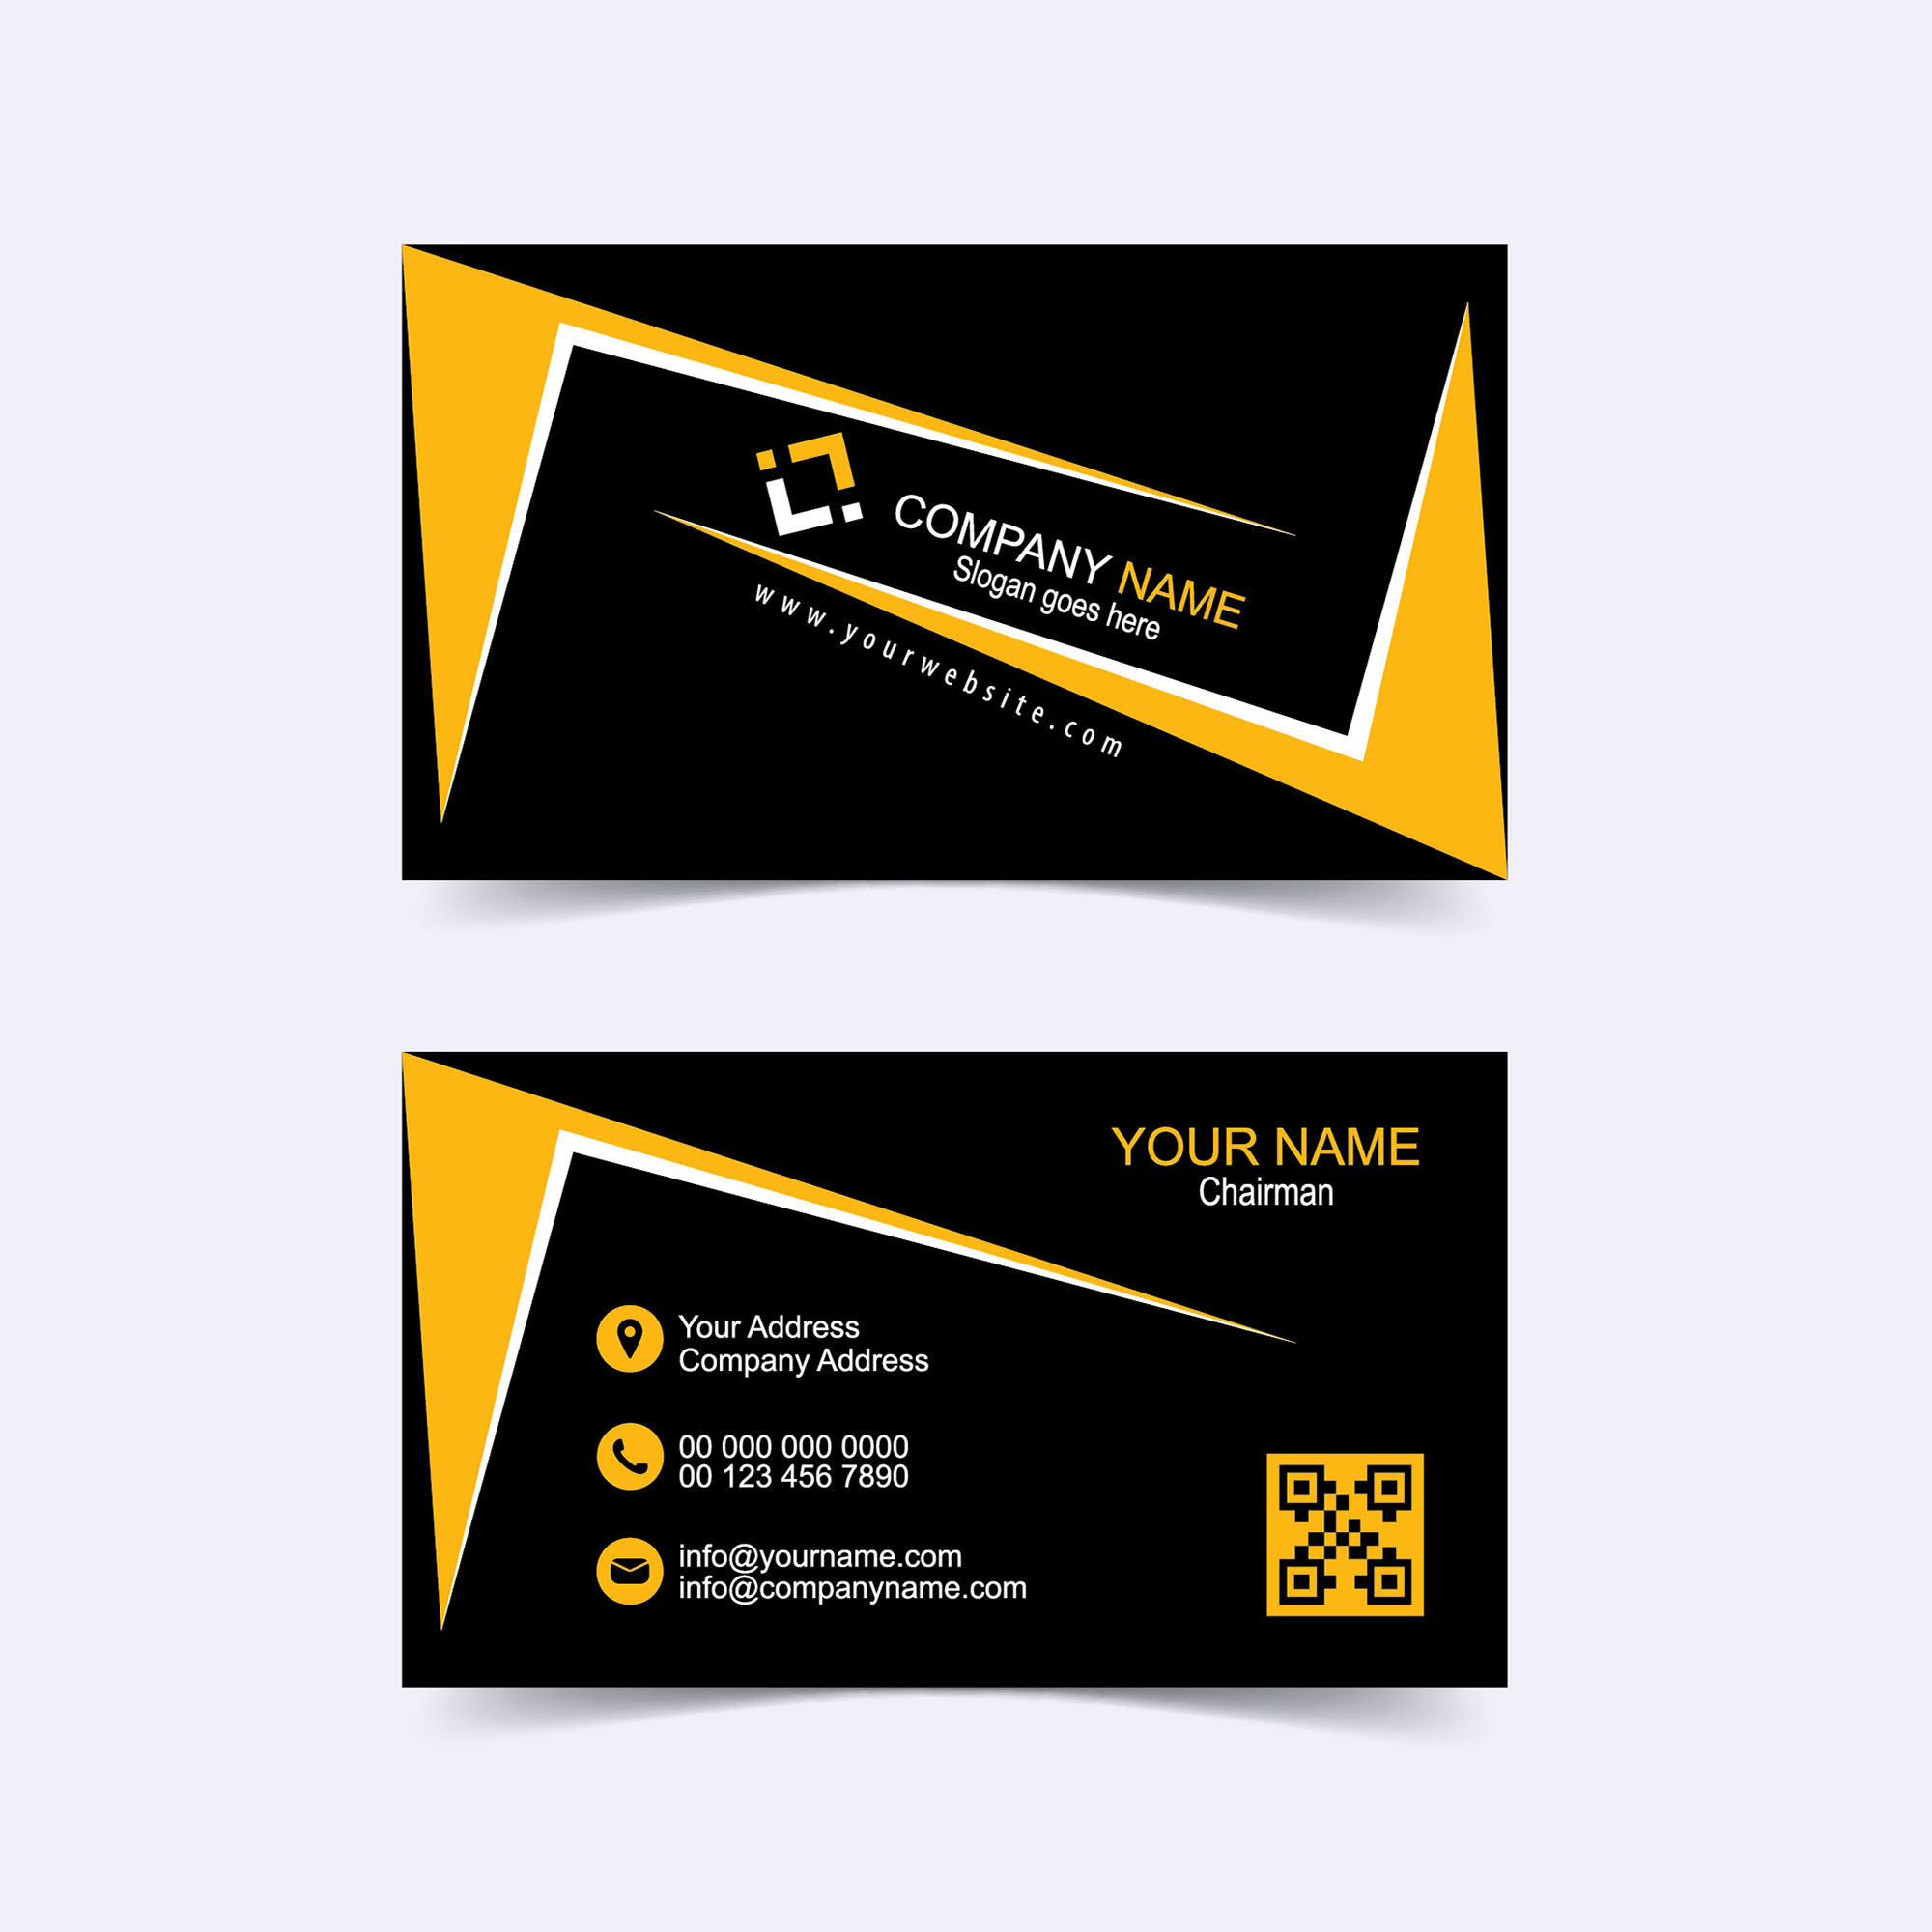 Modern business card template vector free download wisxi business card business cards business card design business card template design templates flashek Images